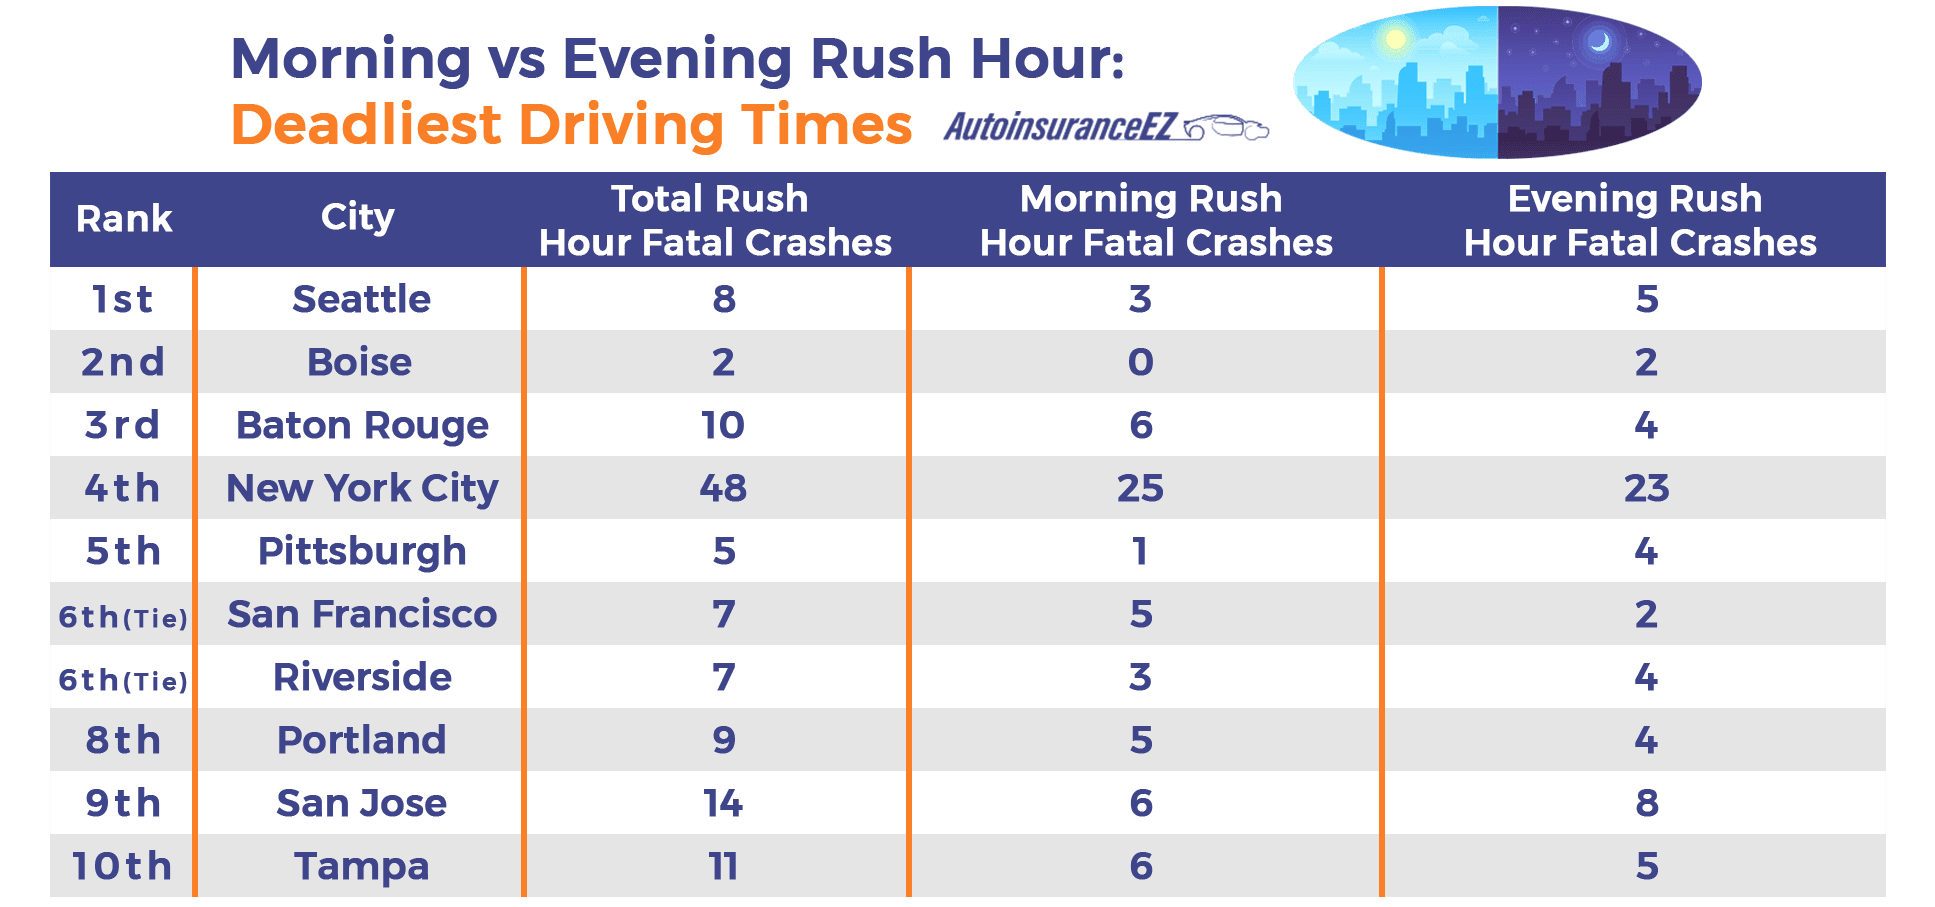 Morning vs Evening Rush Hour Deadliest Driving Times